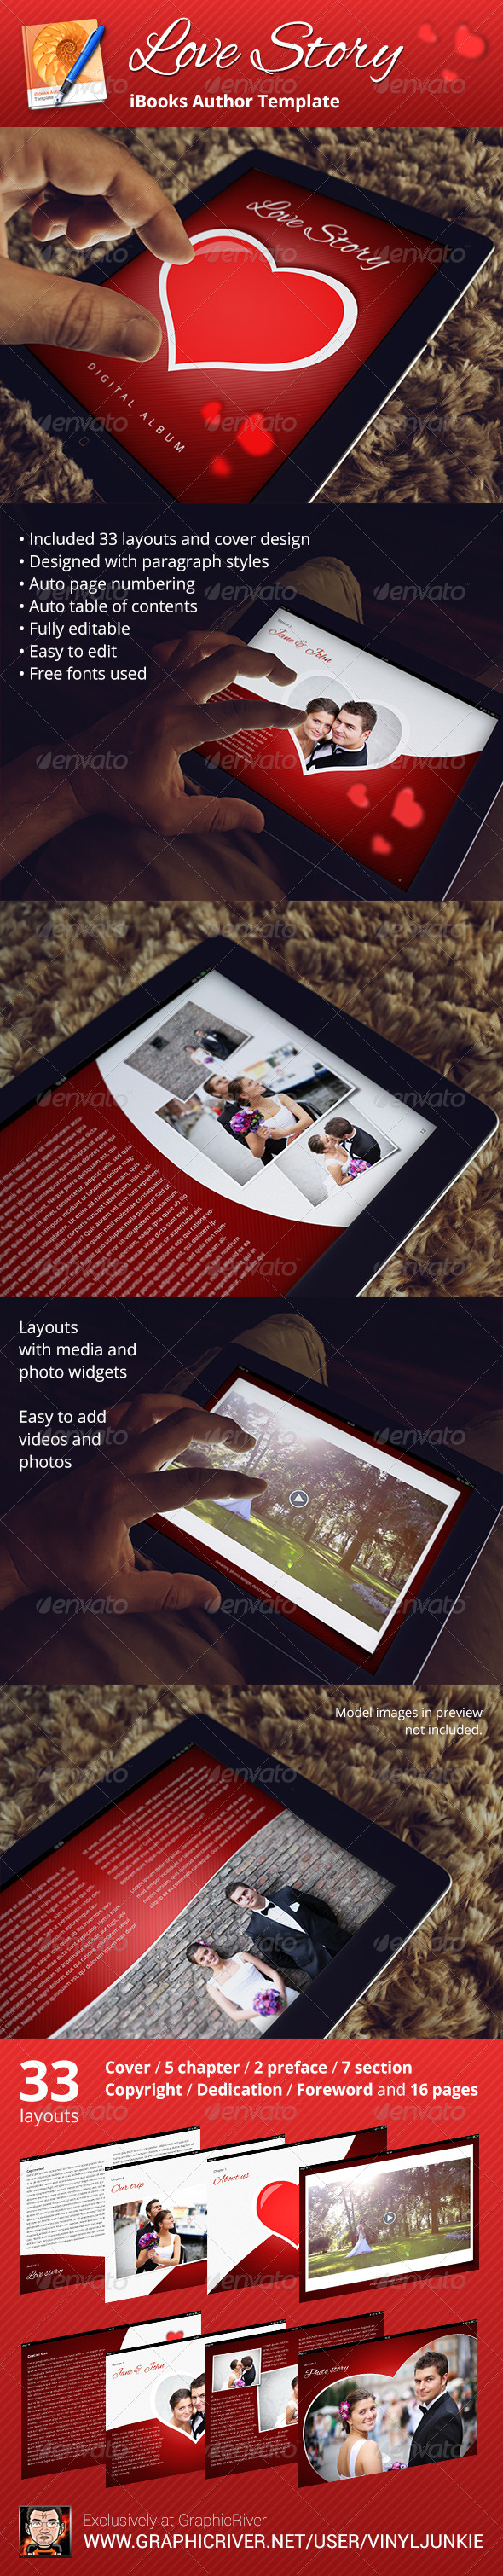 GraphicRiver Love Story Digital Album iBooks Author Template 6589913